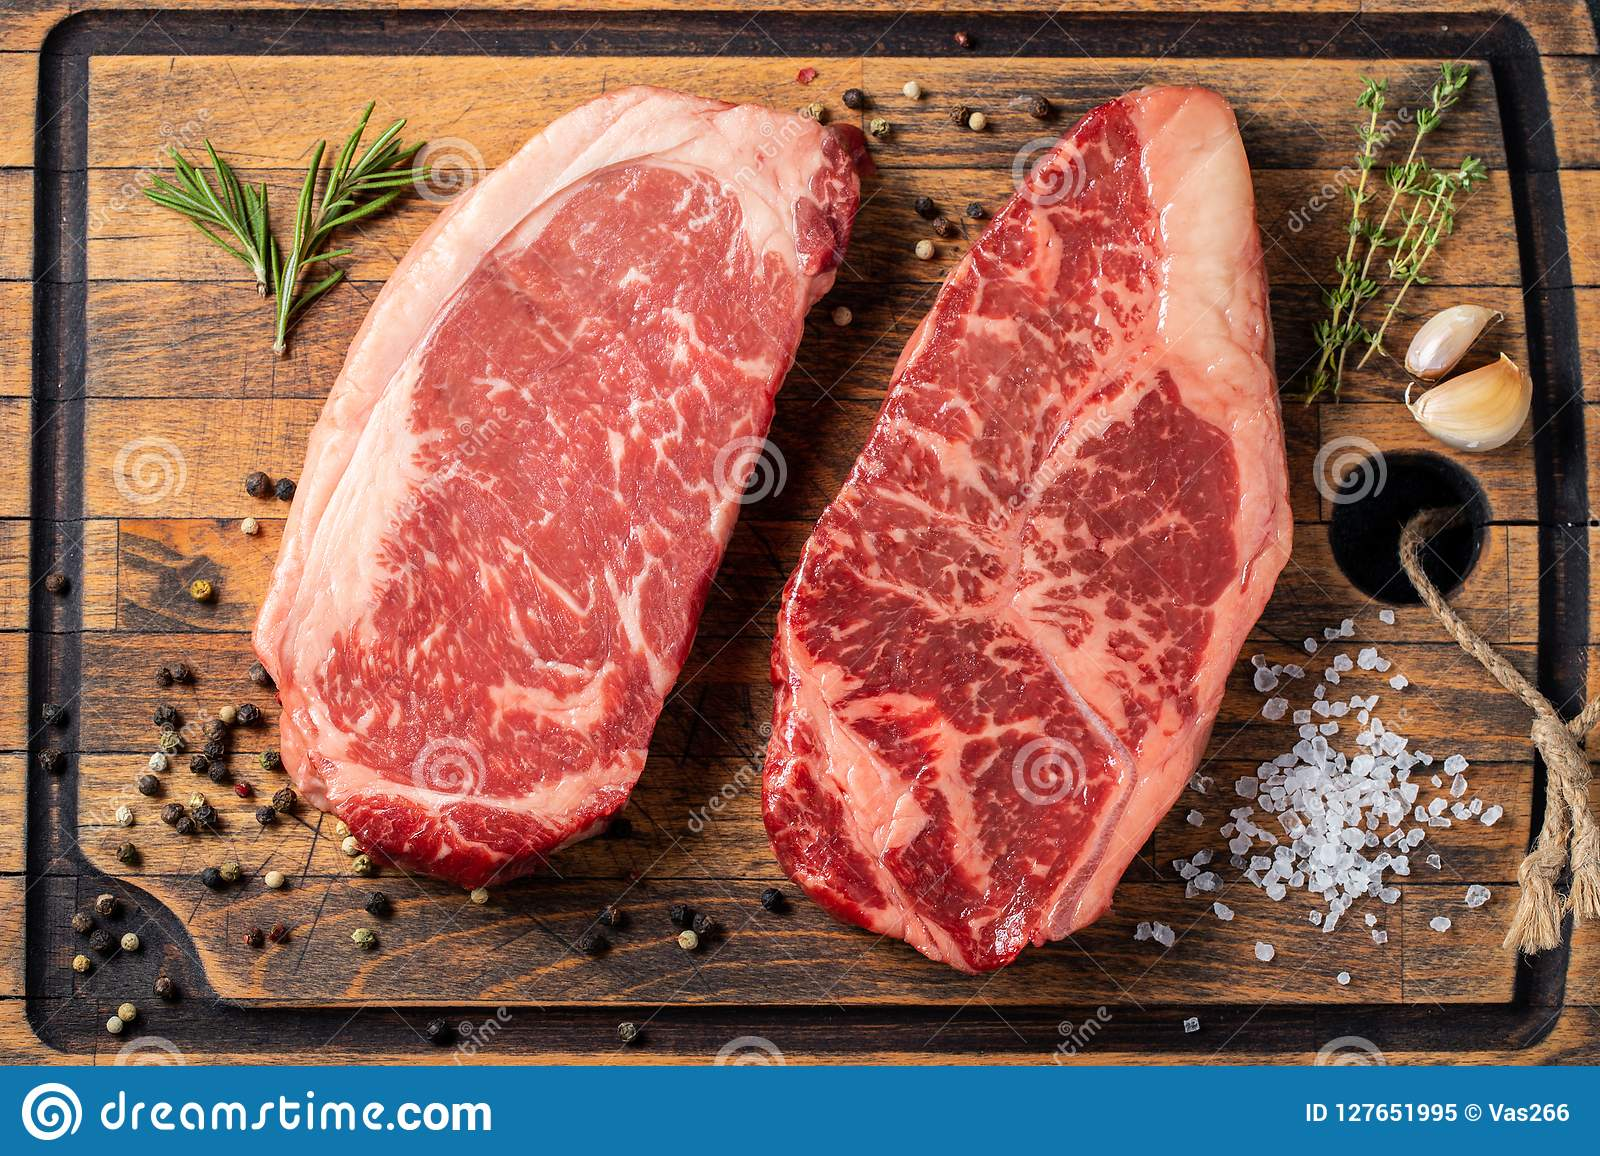 Fresh raw Prime Black Angus beef steaks with spices on wooden board: Striploin, Rib Eye. Top view. On a dark background